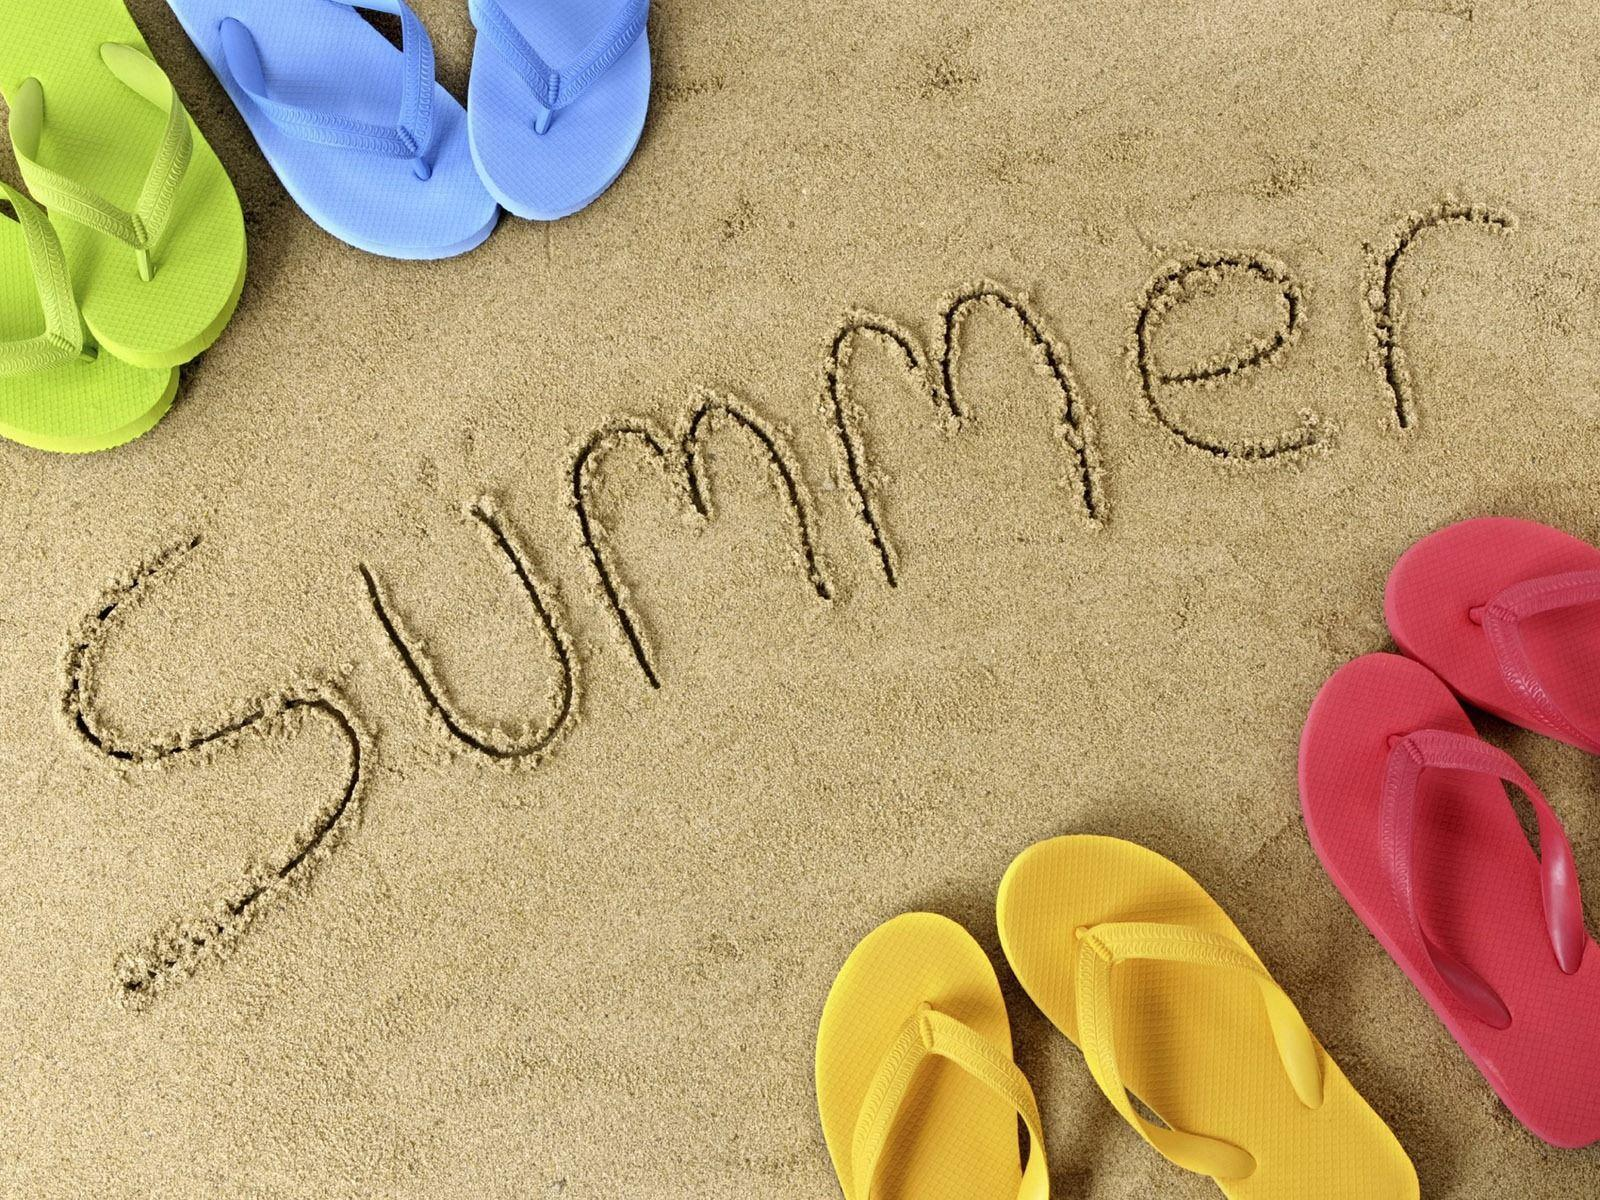 Summer Hd Backgrounds Wallpapers 162 HD Wallpapers